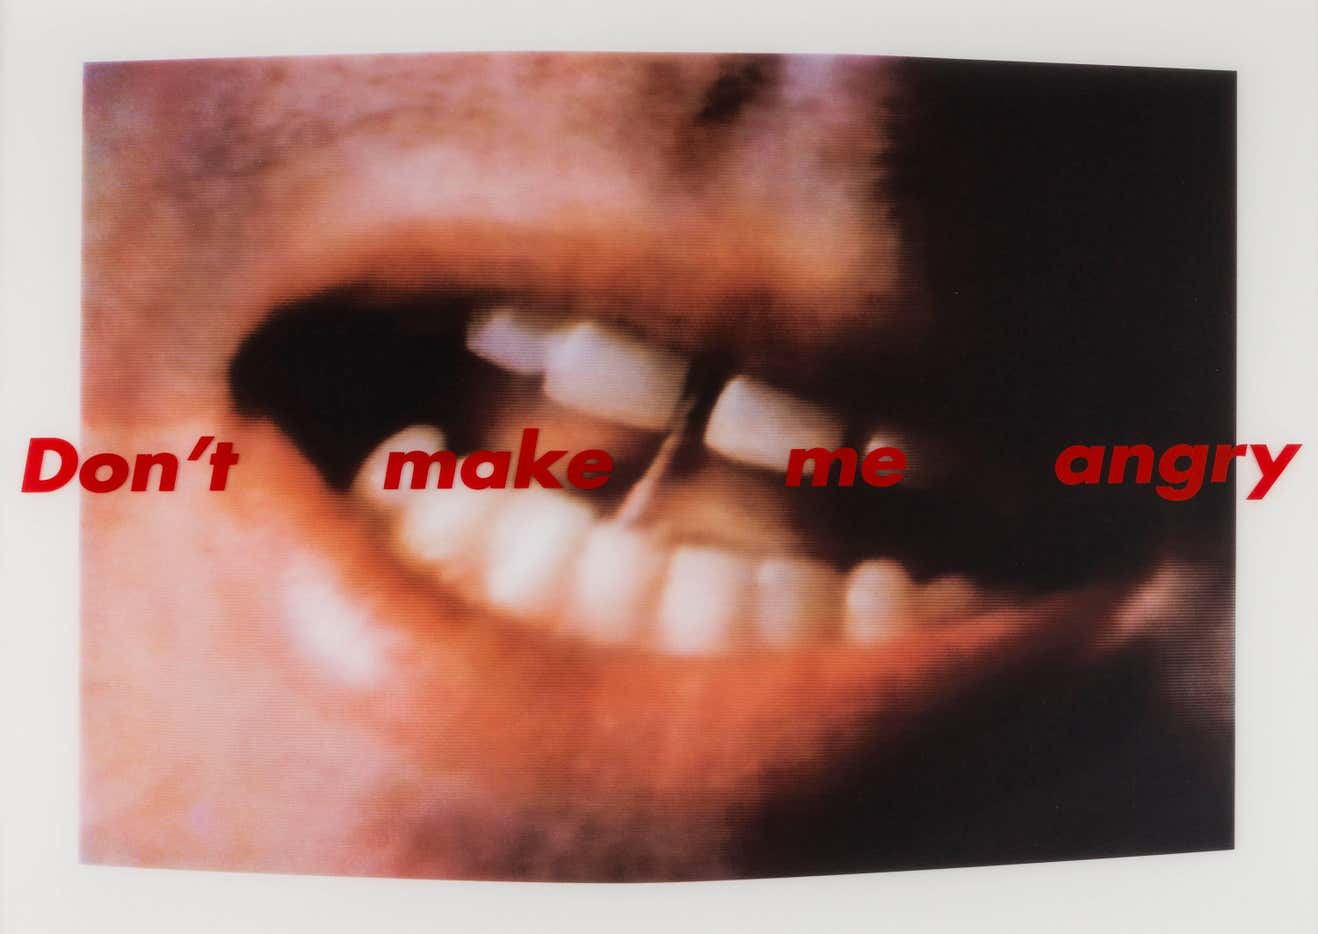 barbara_kruger_small_master.jpg?disable=upscale&auto=webp&quality=60&width=1318